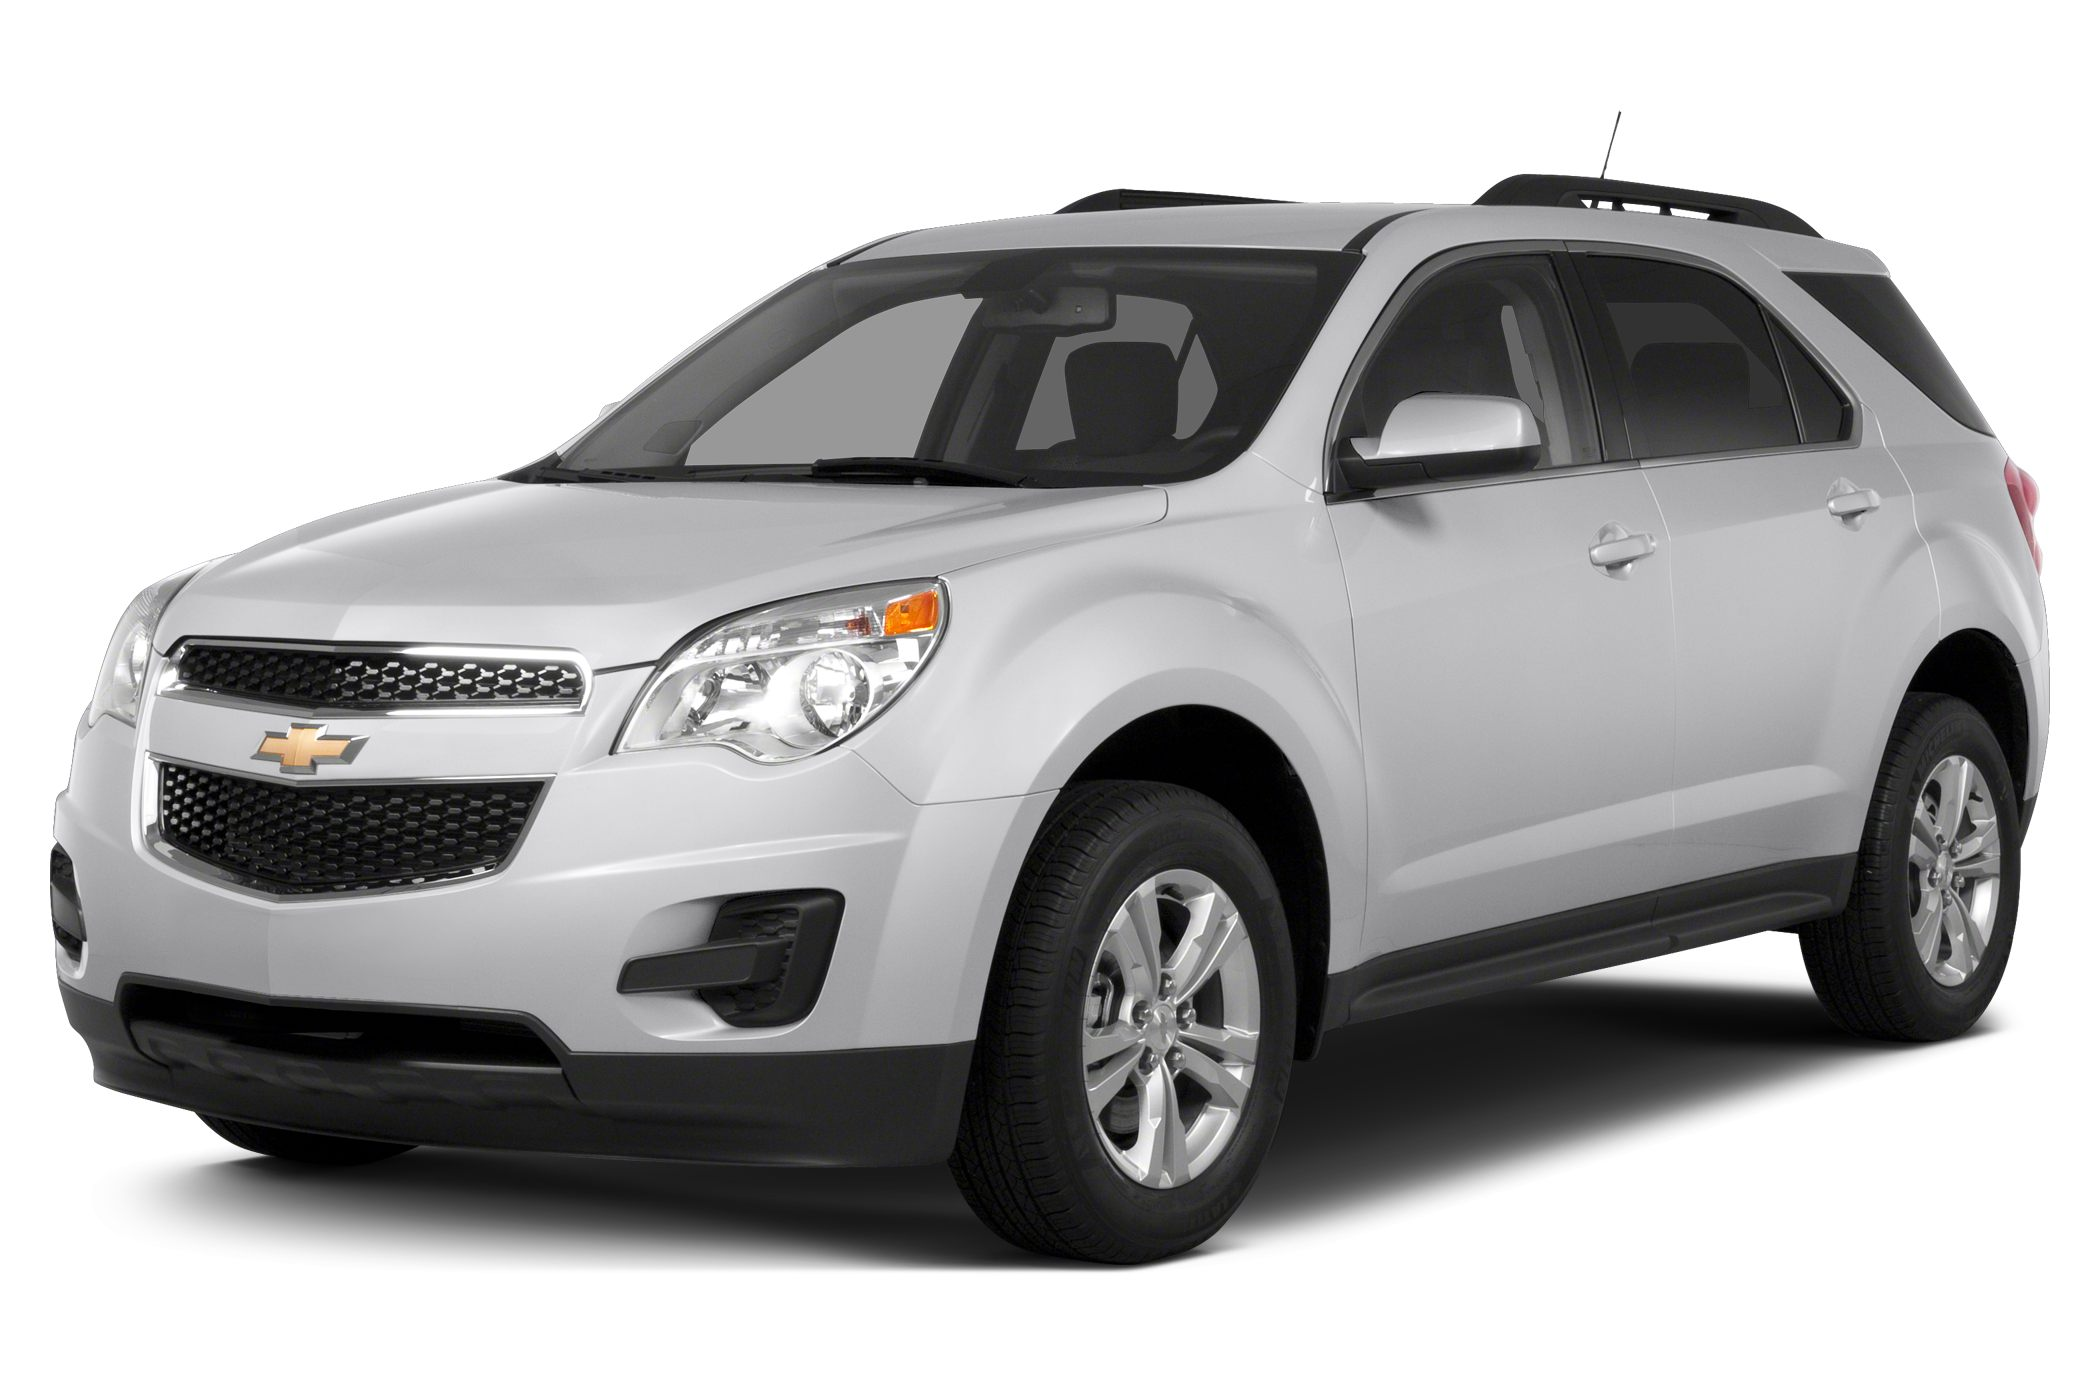 2013 Chevrolet Equinox LTZ SUV for sale in Greenville for $27,990 with 15,141 miles.